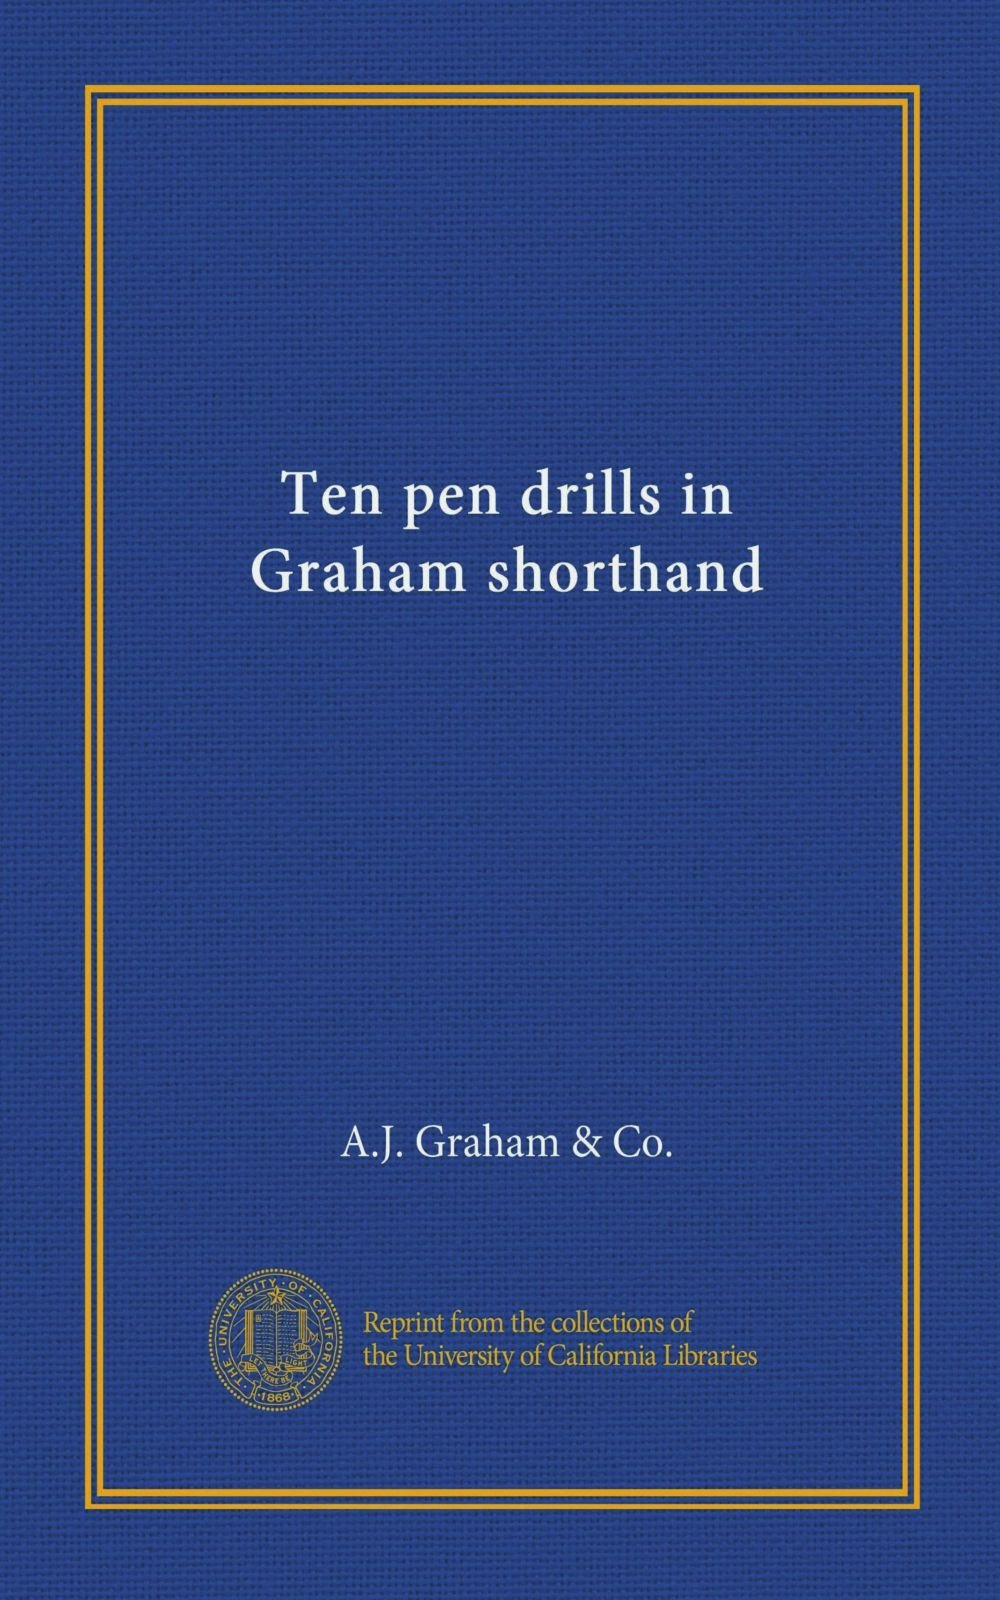 Download Ten pen drills in Graham shorthand pdf